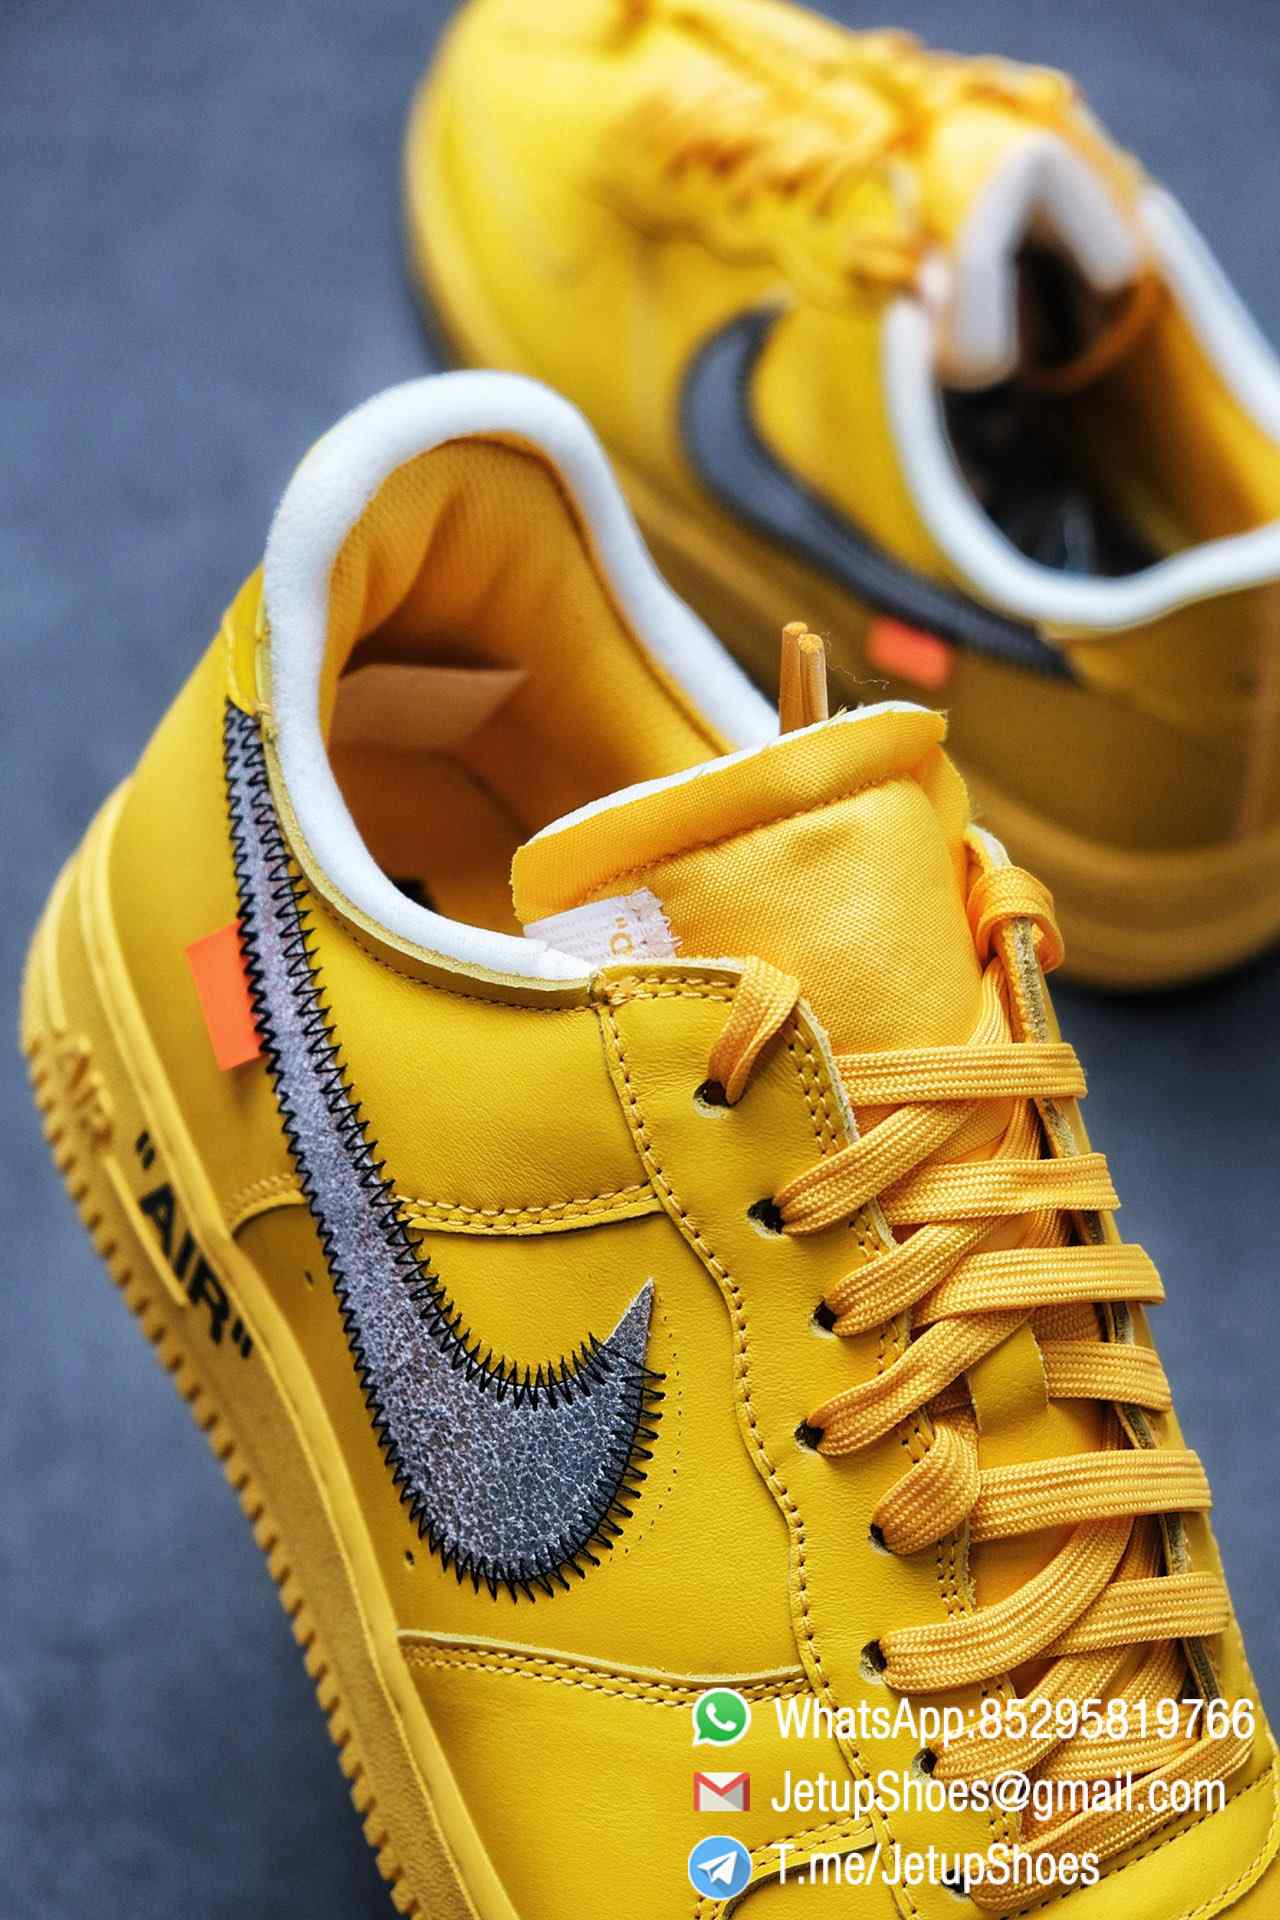 Best Replica Sneakers Off White x Air Force 1 Low University Gold SKU DD1876 700 Top Quality Basketball Shoes 05